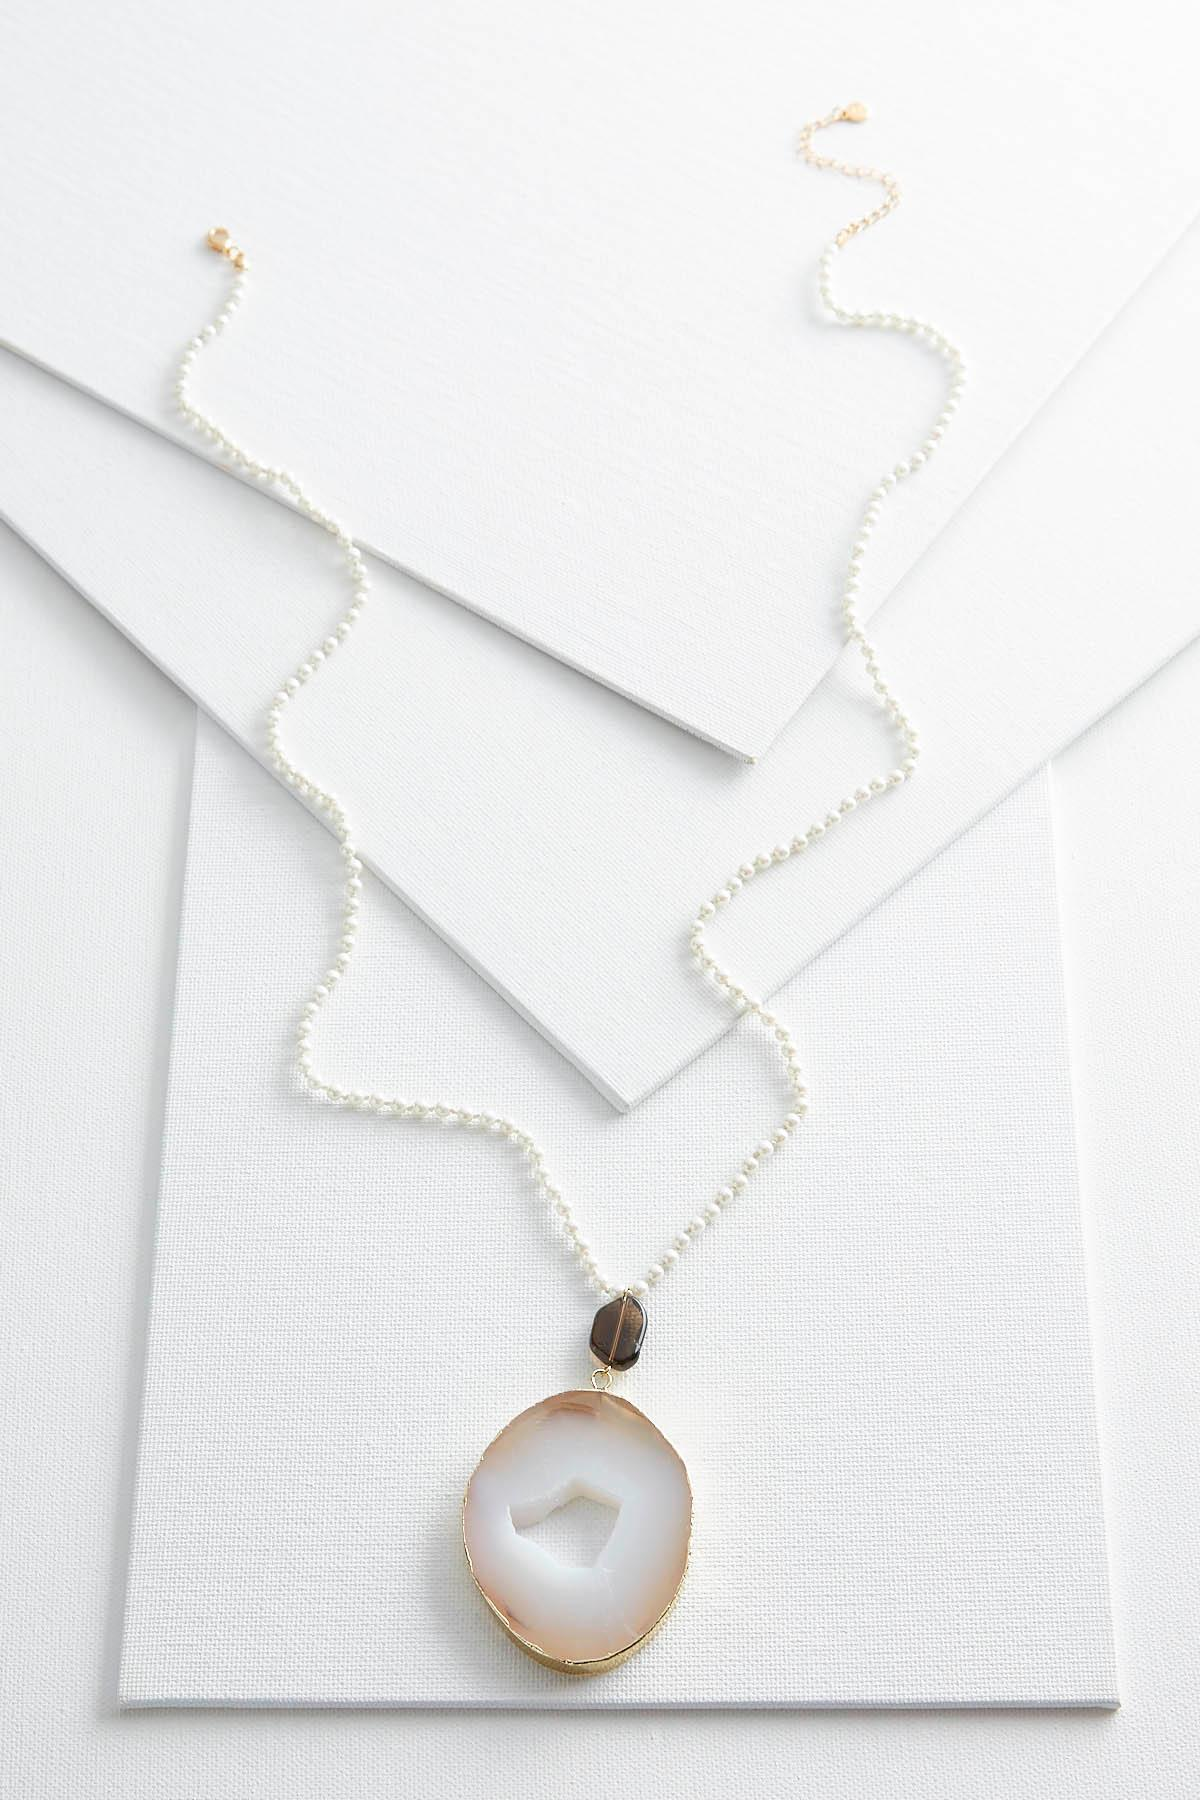 Versona pearl agate pendant necklace pearl agate pendant necklace item 42743328 aloadofball Choice Image